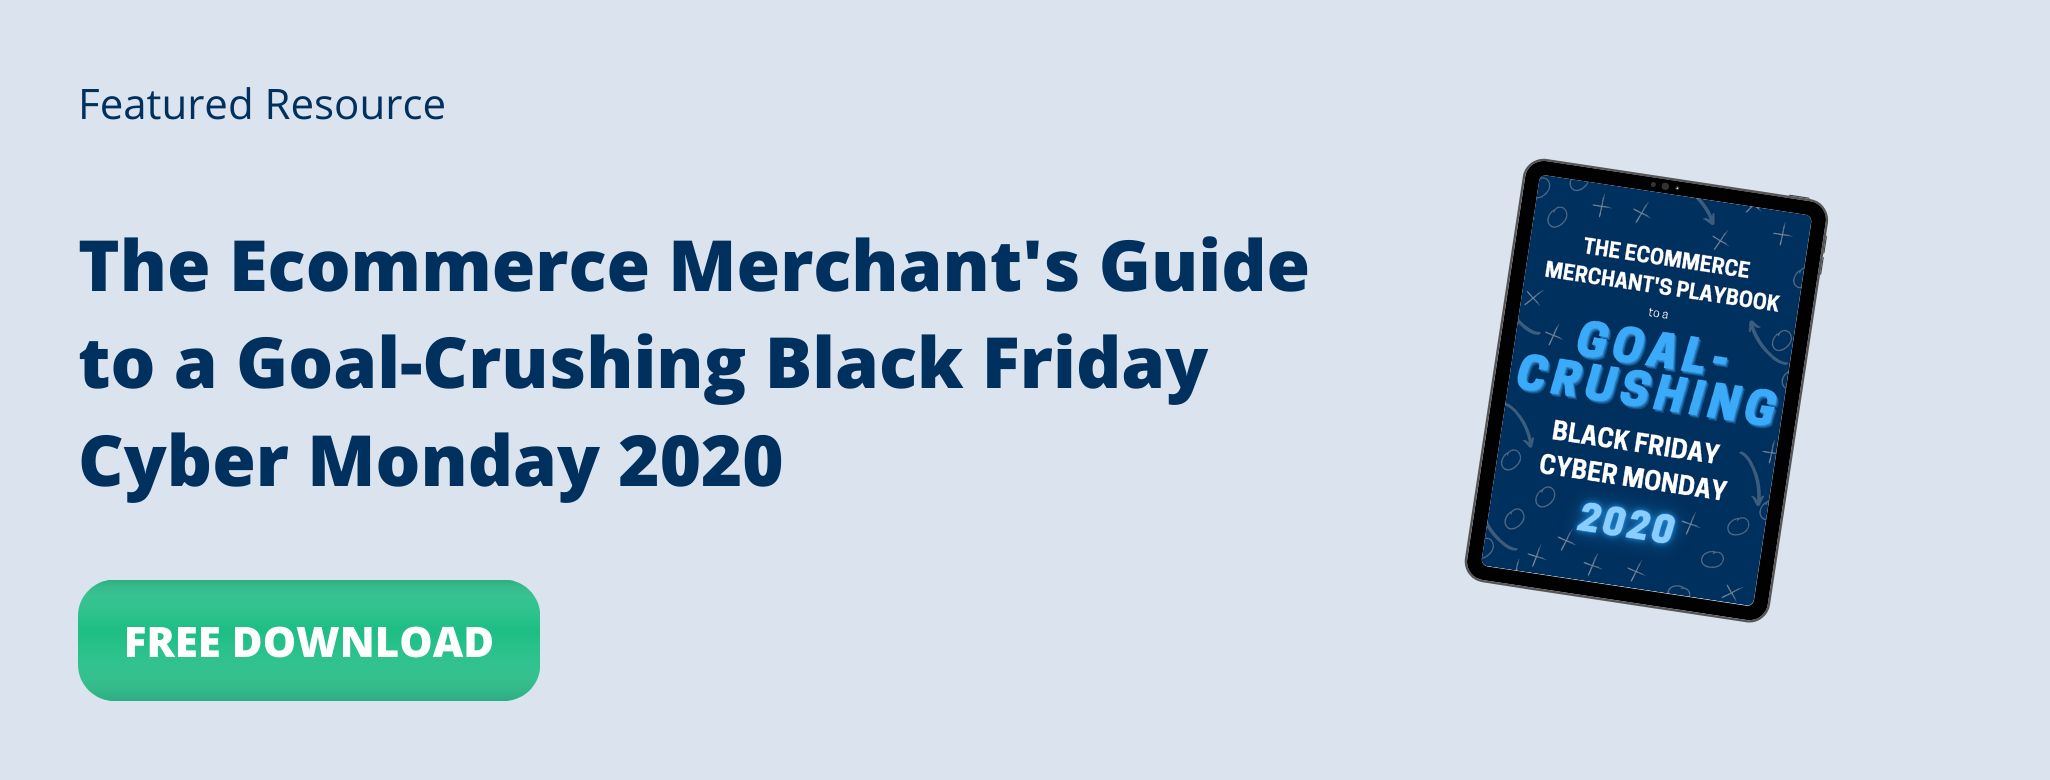 Download the Ecommerce Merchant's Guide to a Goal-Crushing Black Friday Cyber Monday